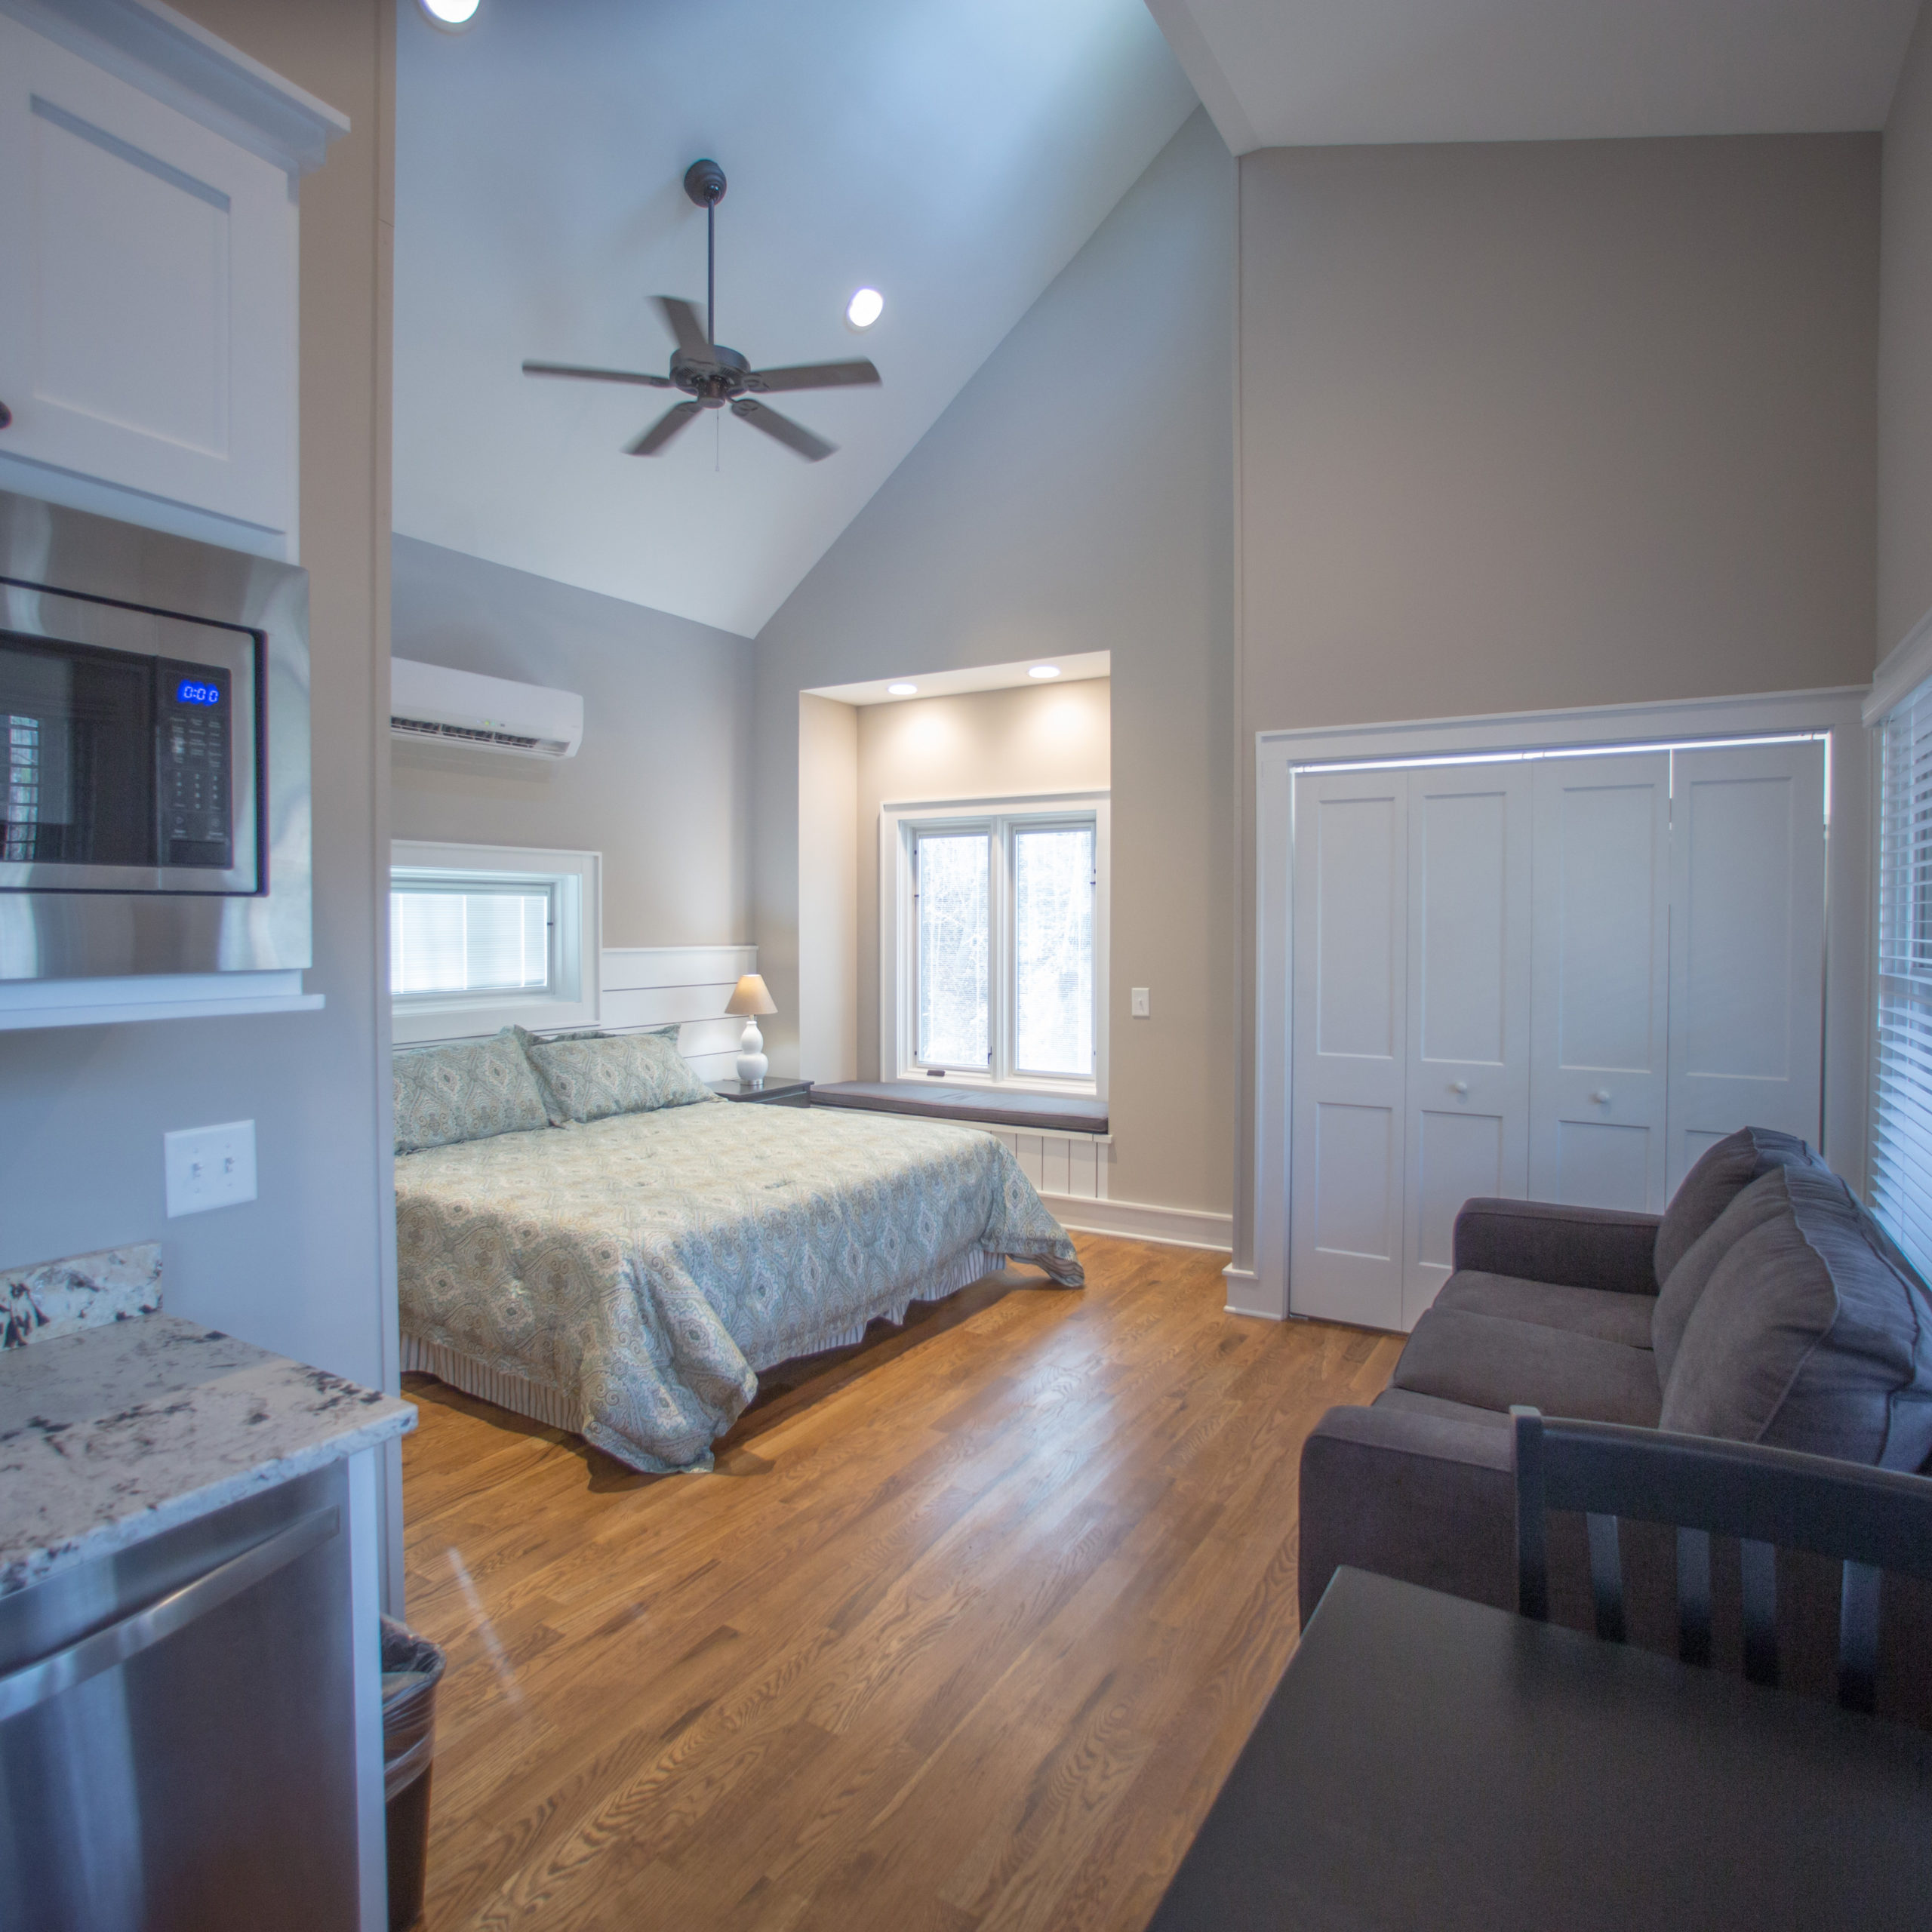 Picture of the inside of a luxurious studio cottage at Ramah Darom showing the king-size bed, pull out sofa, table and a corner of the kitchenette